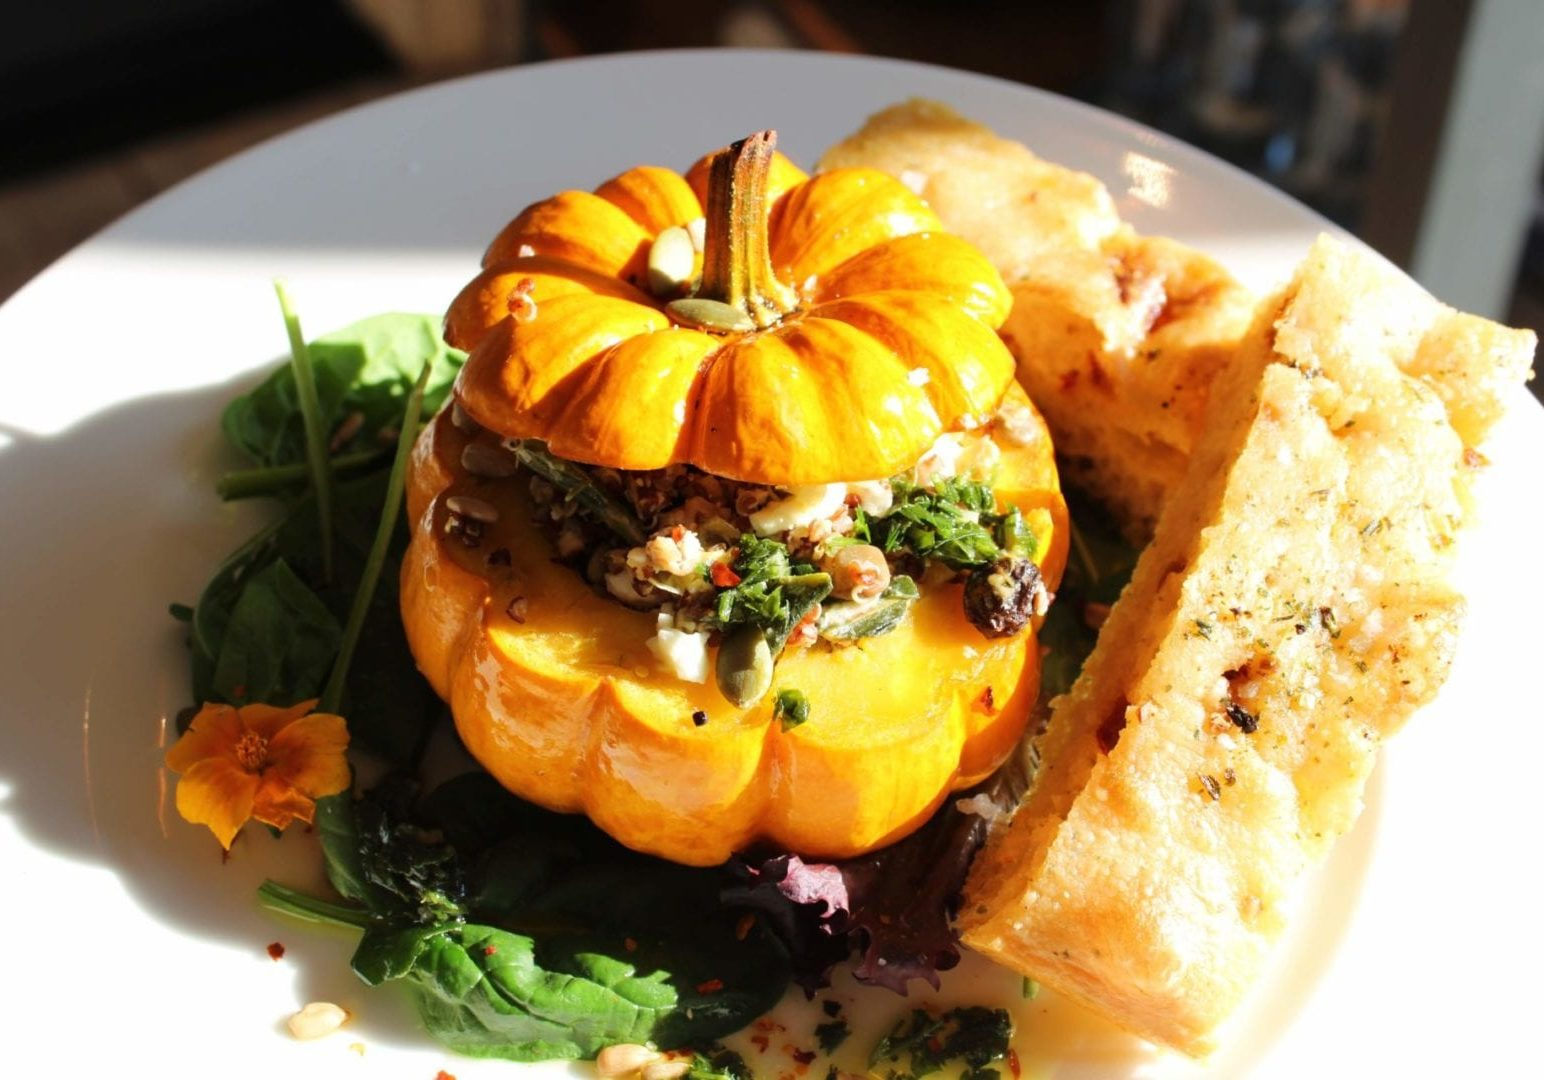 Autumn harvest gives way to cozy lunches